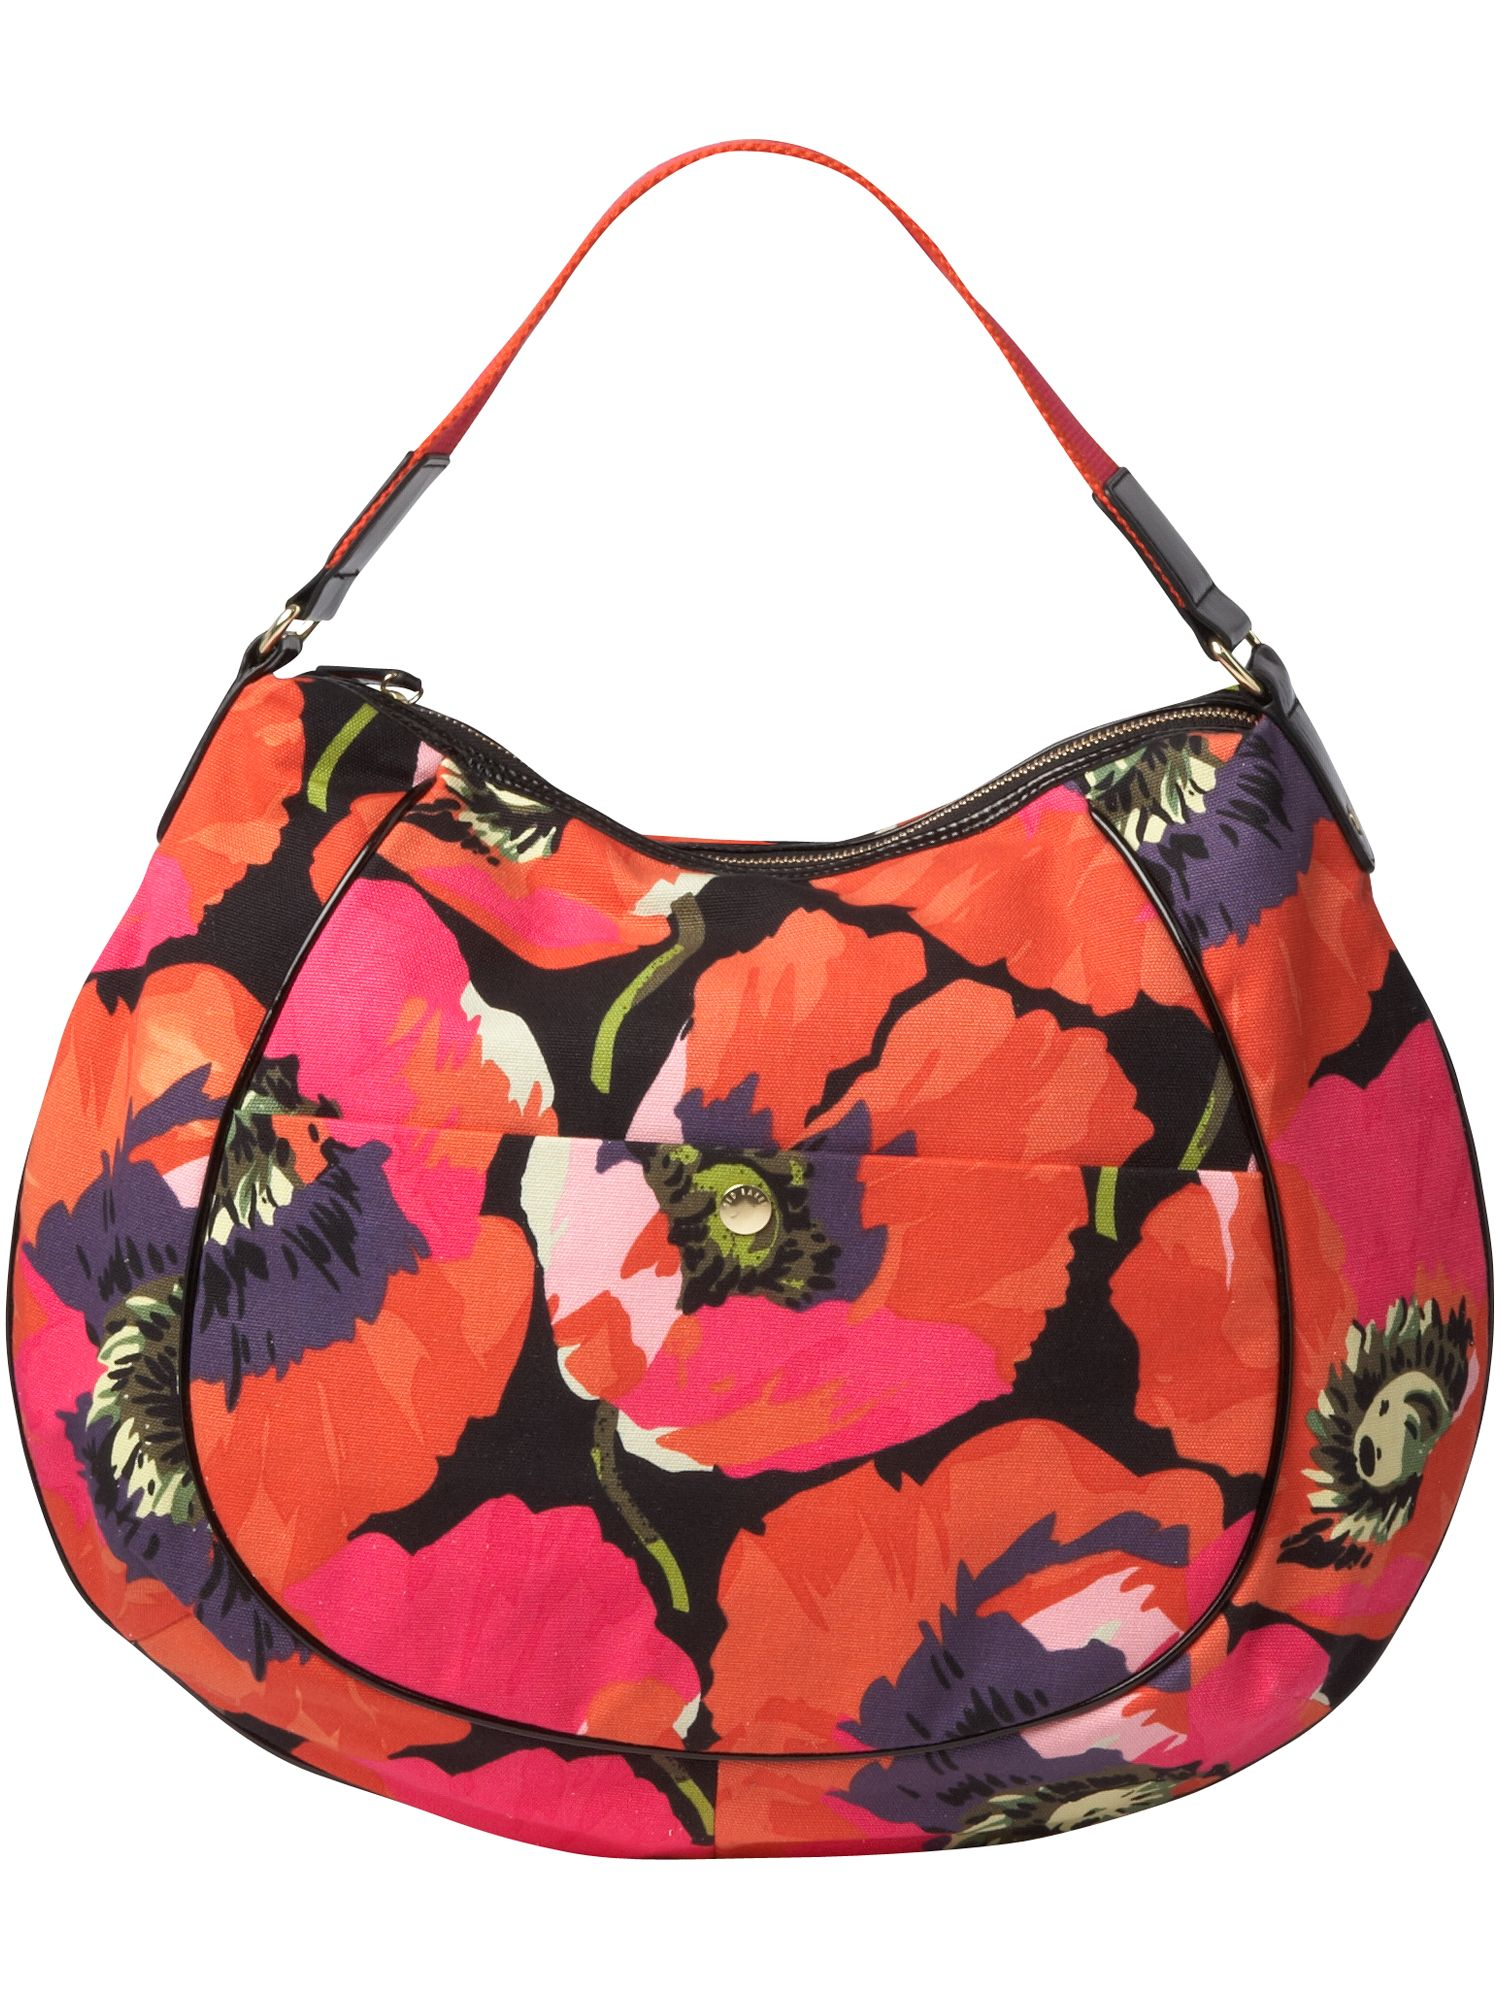 Joso fabric hobo bag.